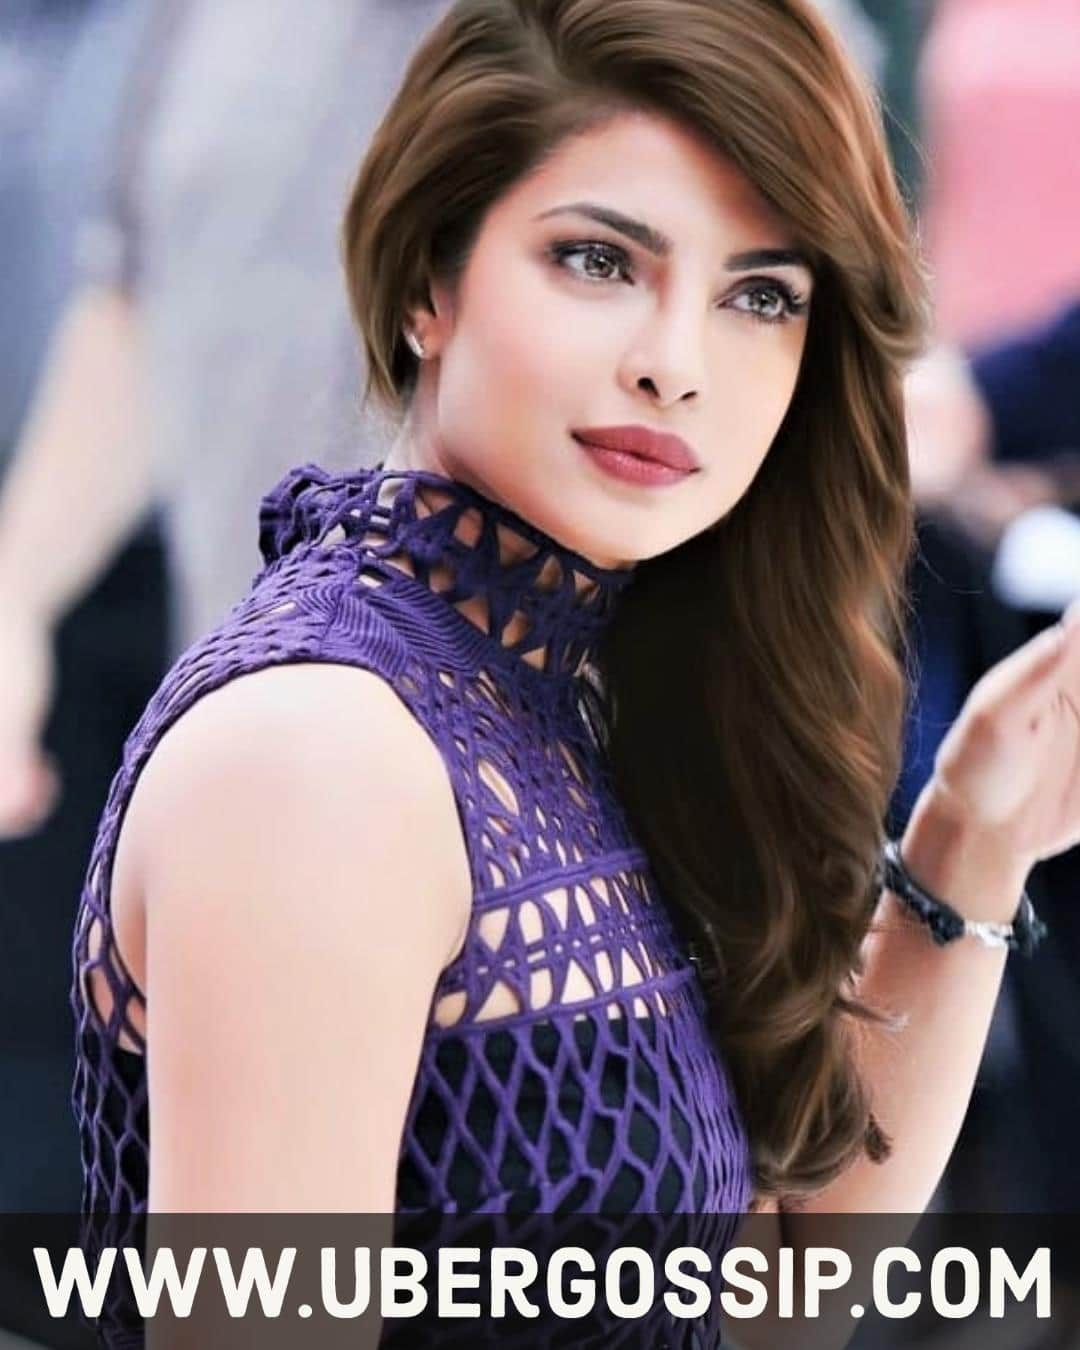 priyanka chopra meghan markle, priyanka chopra latest, nick jonas family, priyanka chopra film, priyanka chopra before and after, priyanka chopra ki, priyanka met gala, priyanka chopra bollywood, priyanka chopra cannes 2019, priyanka chopra filmography, priyanka chopra imdb, priyanka chopra 2019